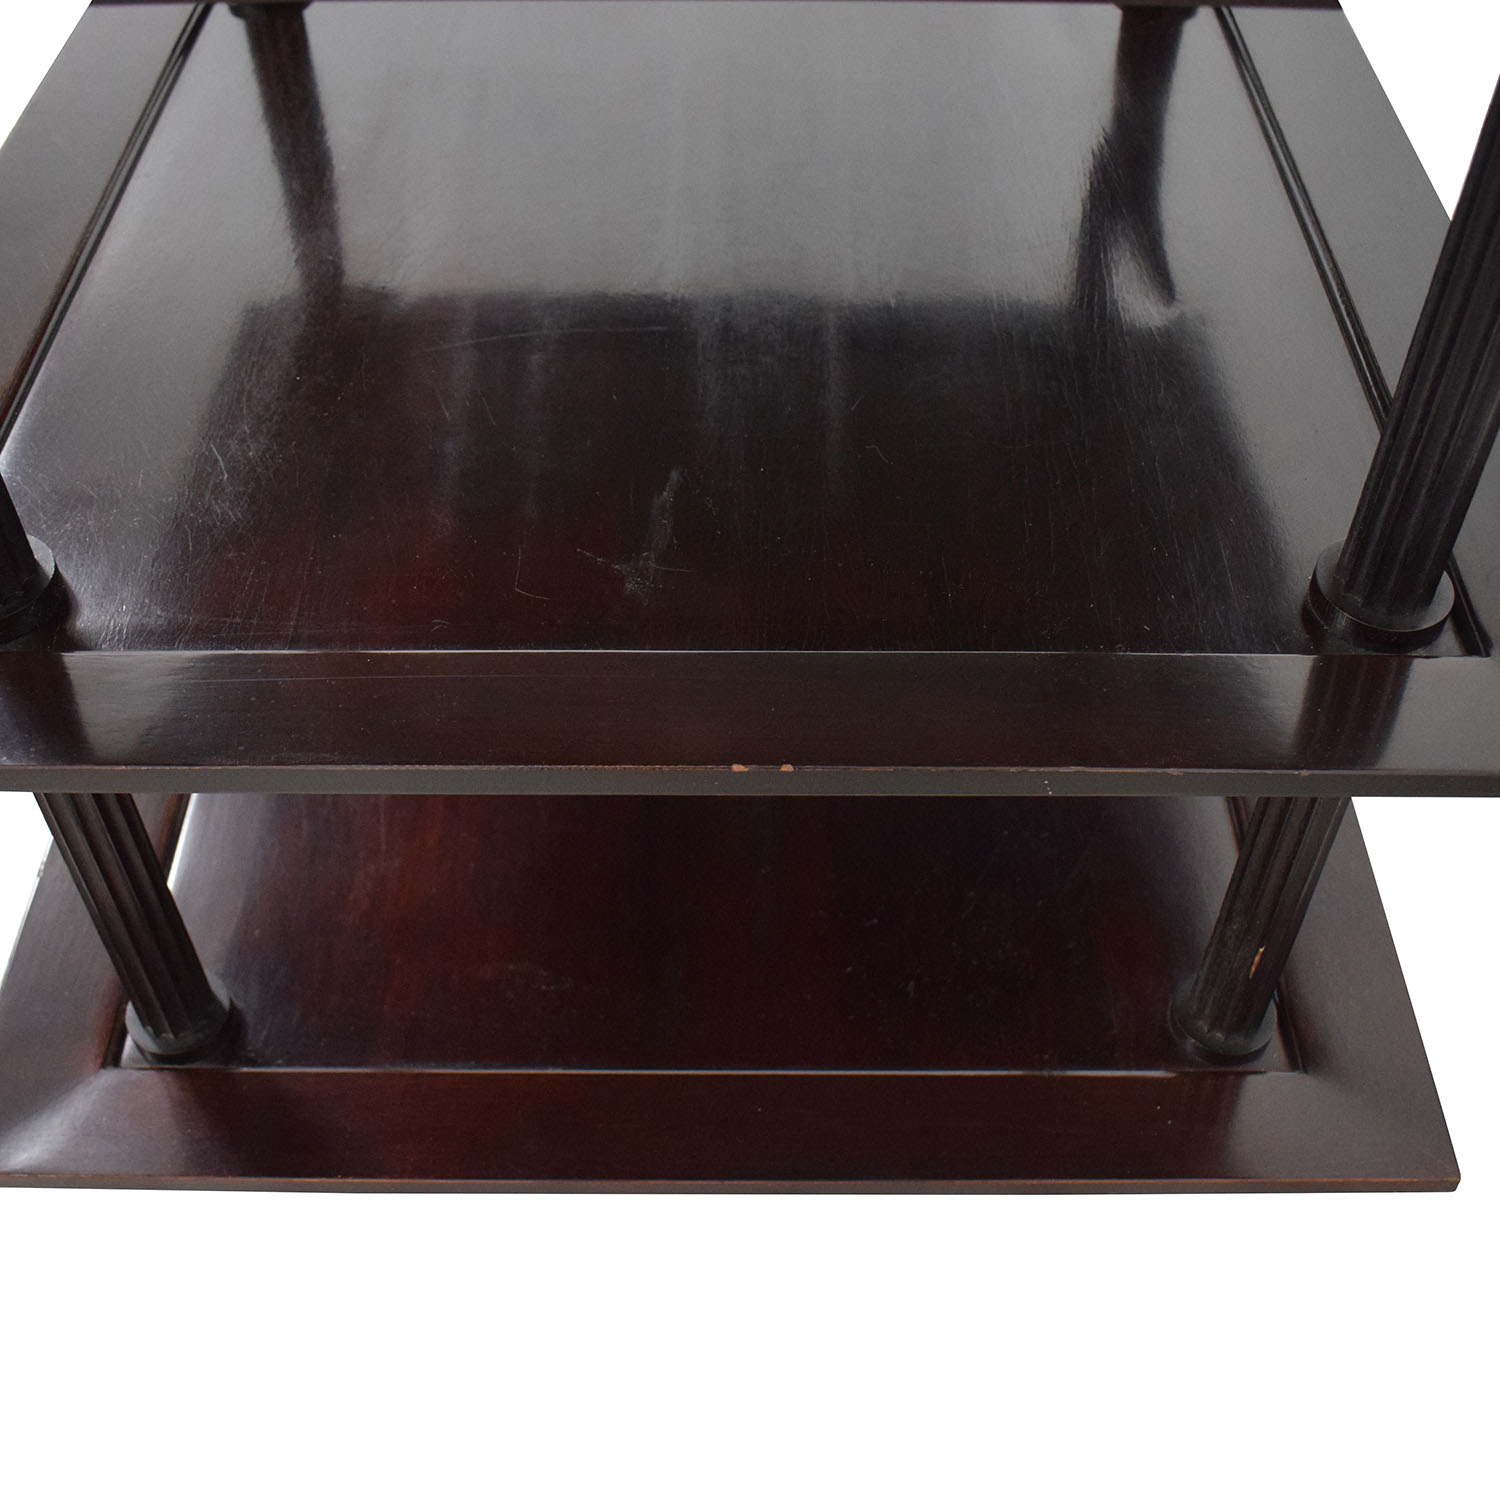 Baker Furniture Baker Furniture by Barbara Barry Three Tiered Accent Table dimensions